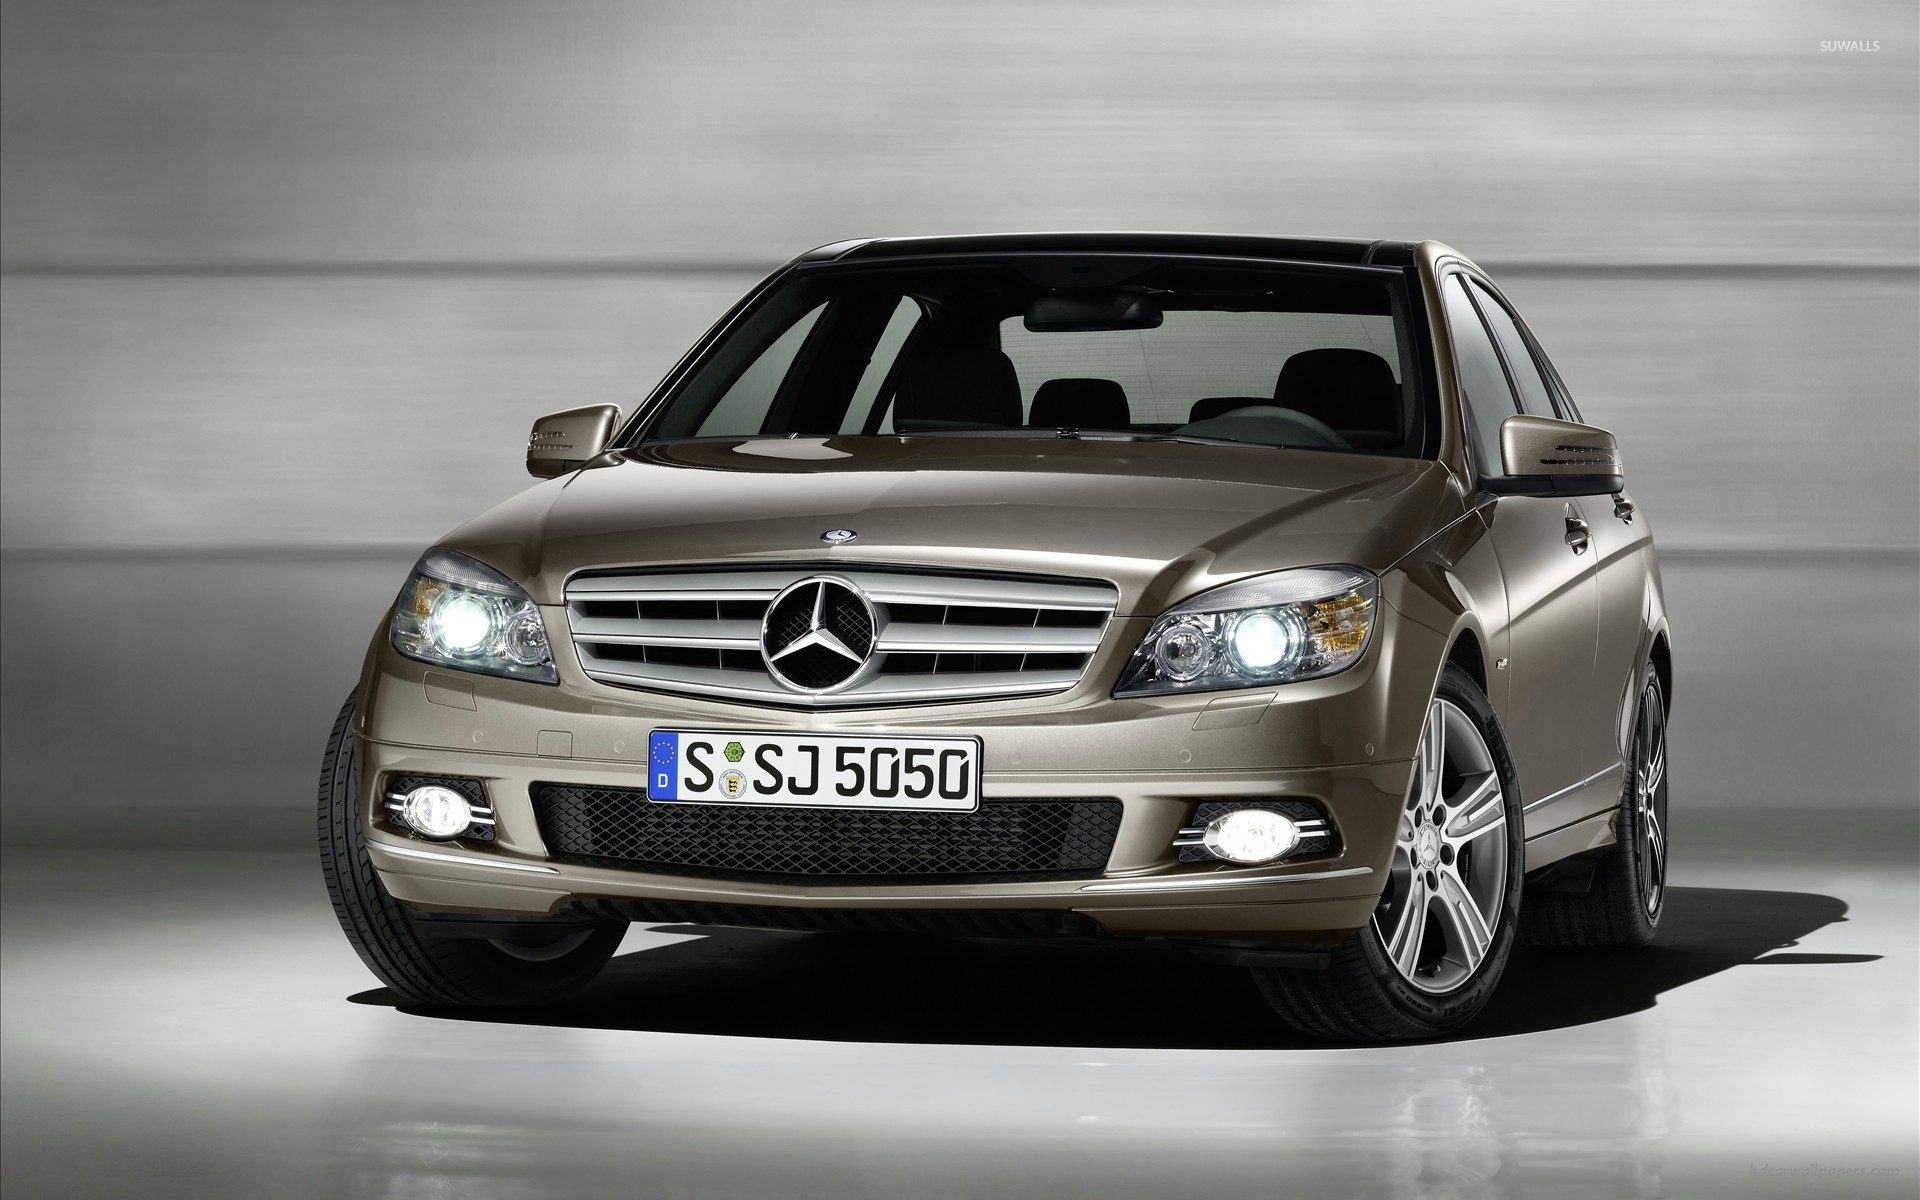 mercedes-benz c-class front view with headlights on wallpaper - car